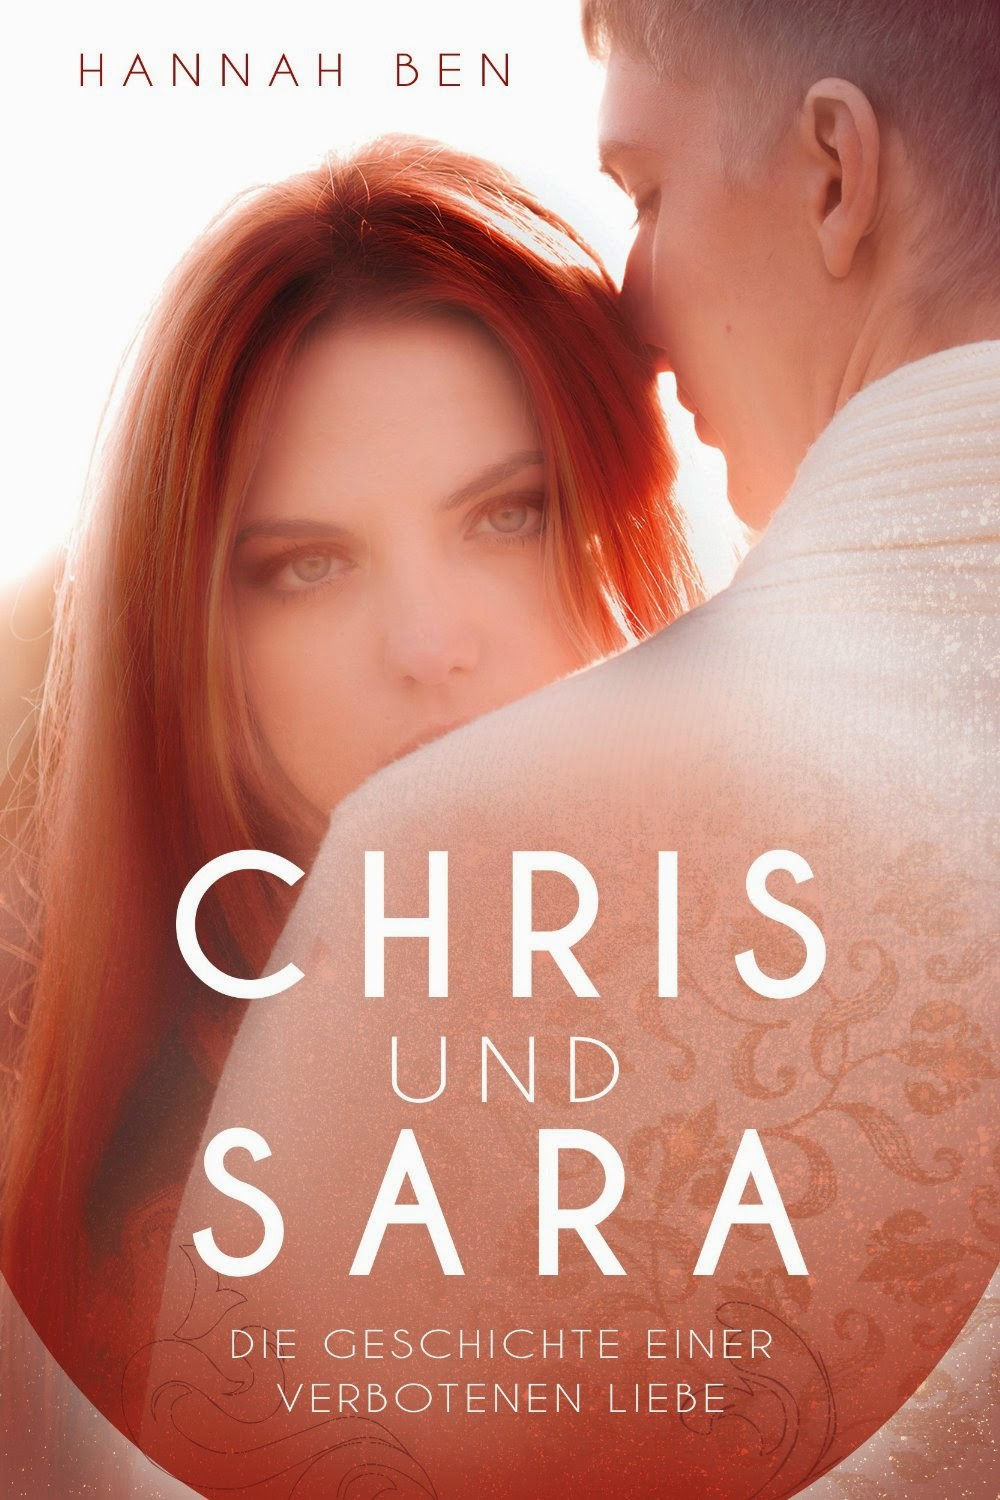 http://www.amazon.de/Chris-Sara-Geschichte-einer-verbotenen-ebook/dp/B00VC0ODDW/ref=sr_1_1_twi_2_kin?ie=UTF8&qid=1428149915&sr=8-1&keywords=chris+und+sara